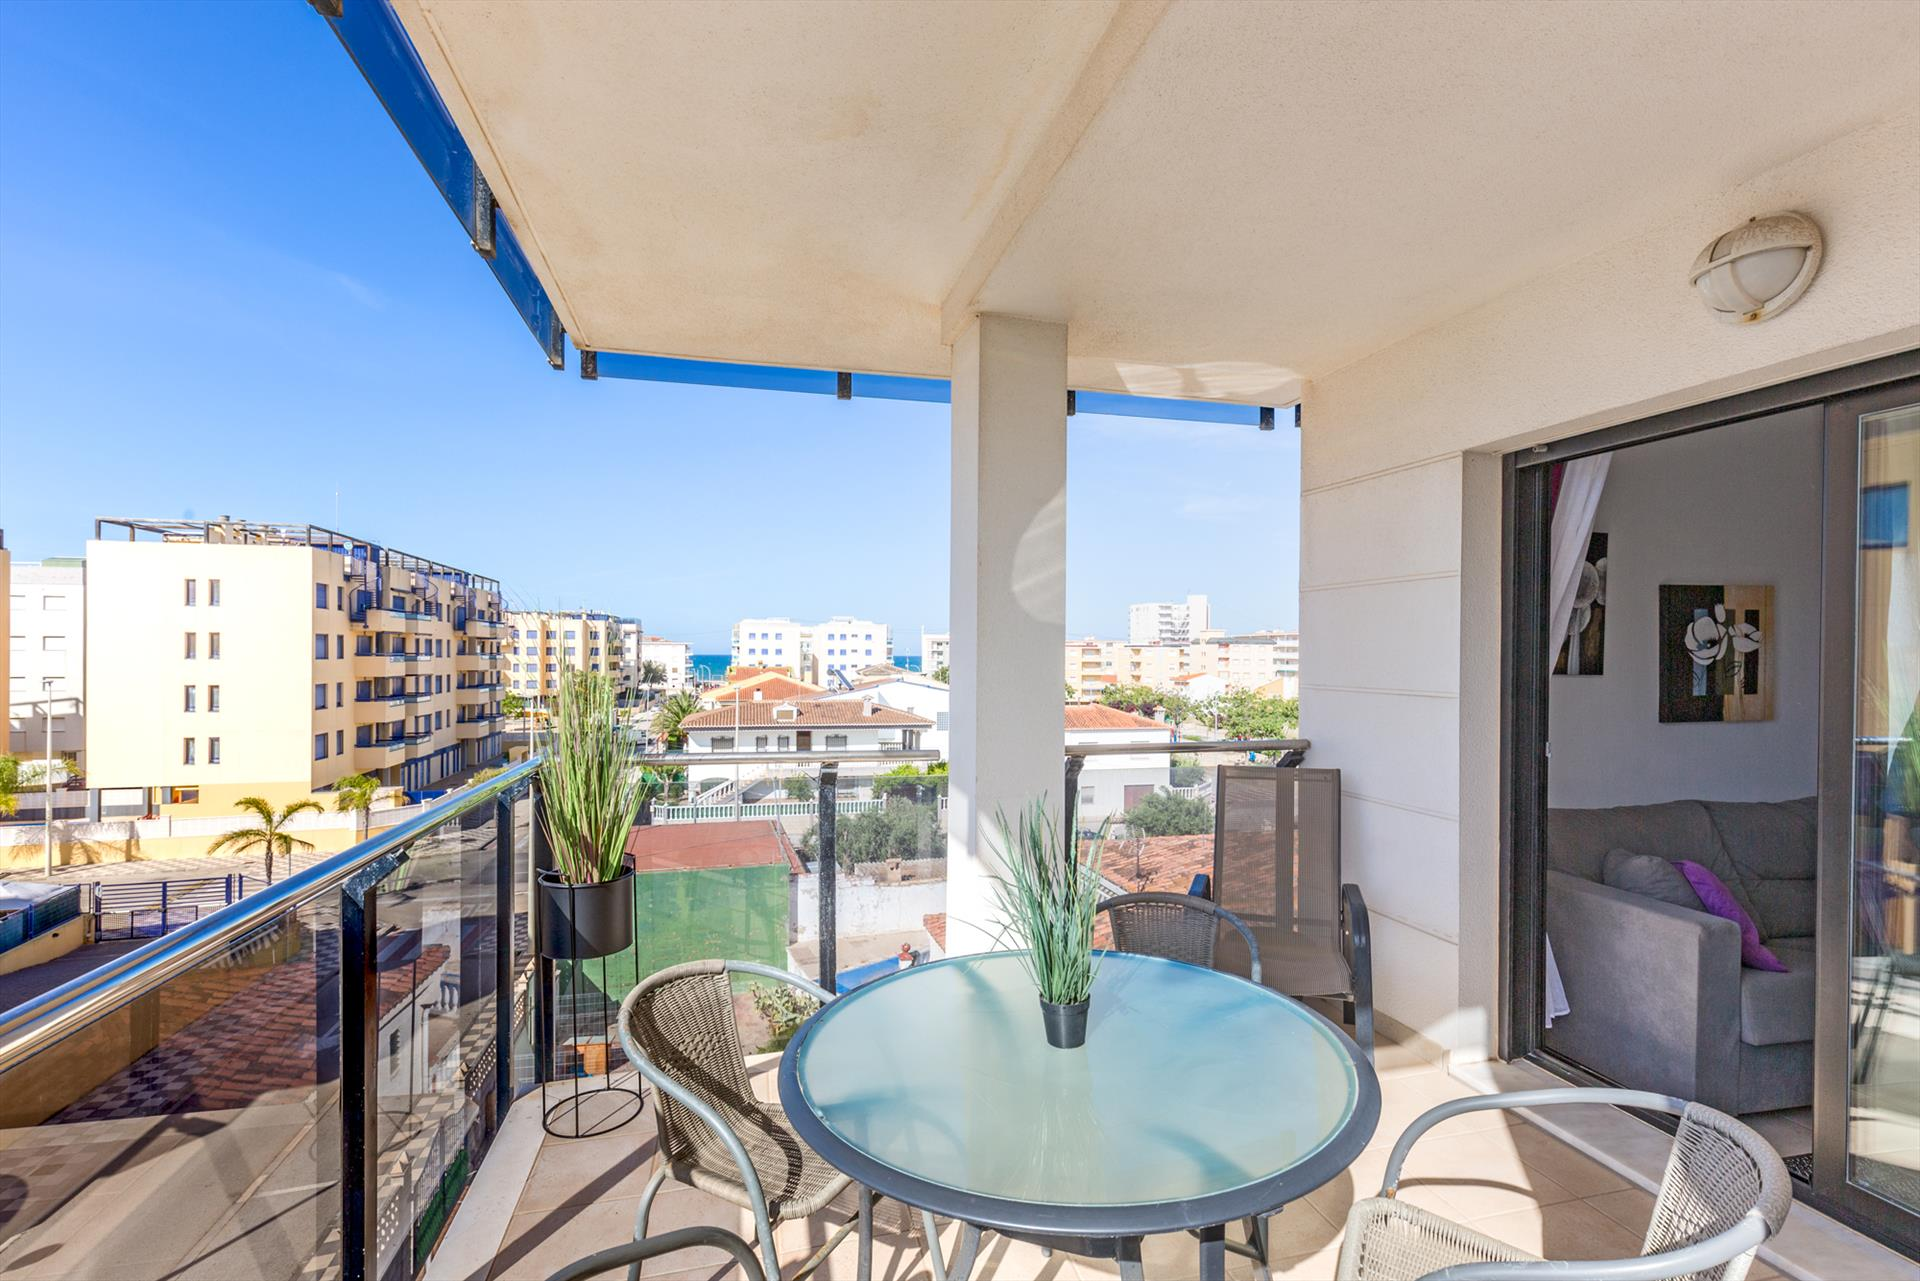 AP12 Migjorn Mar de Bellreguard, Wonderful and nice apartment  with communal pool in Bellreguard, on the Costa Blanca, Spain for 6 persons.....